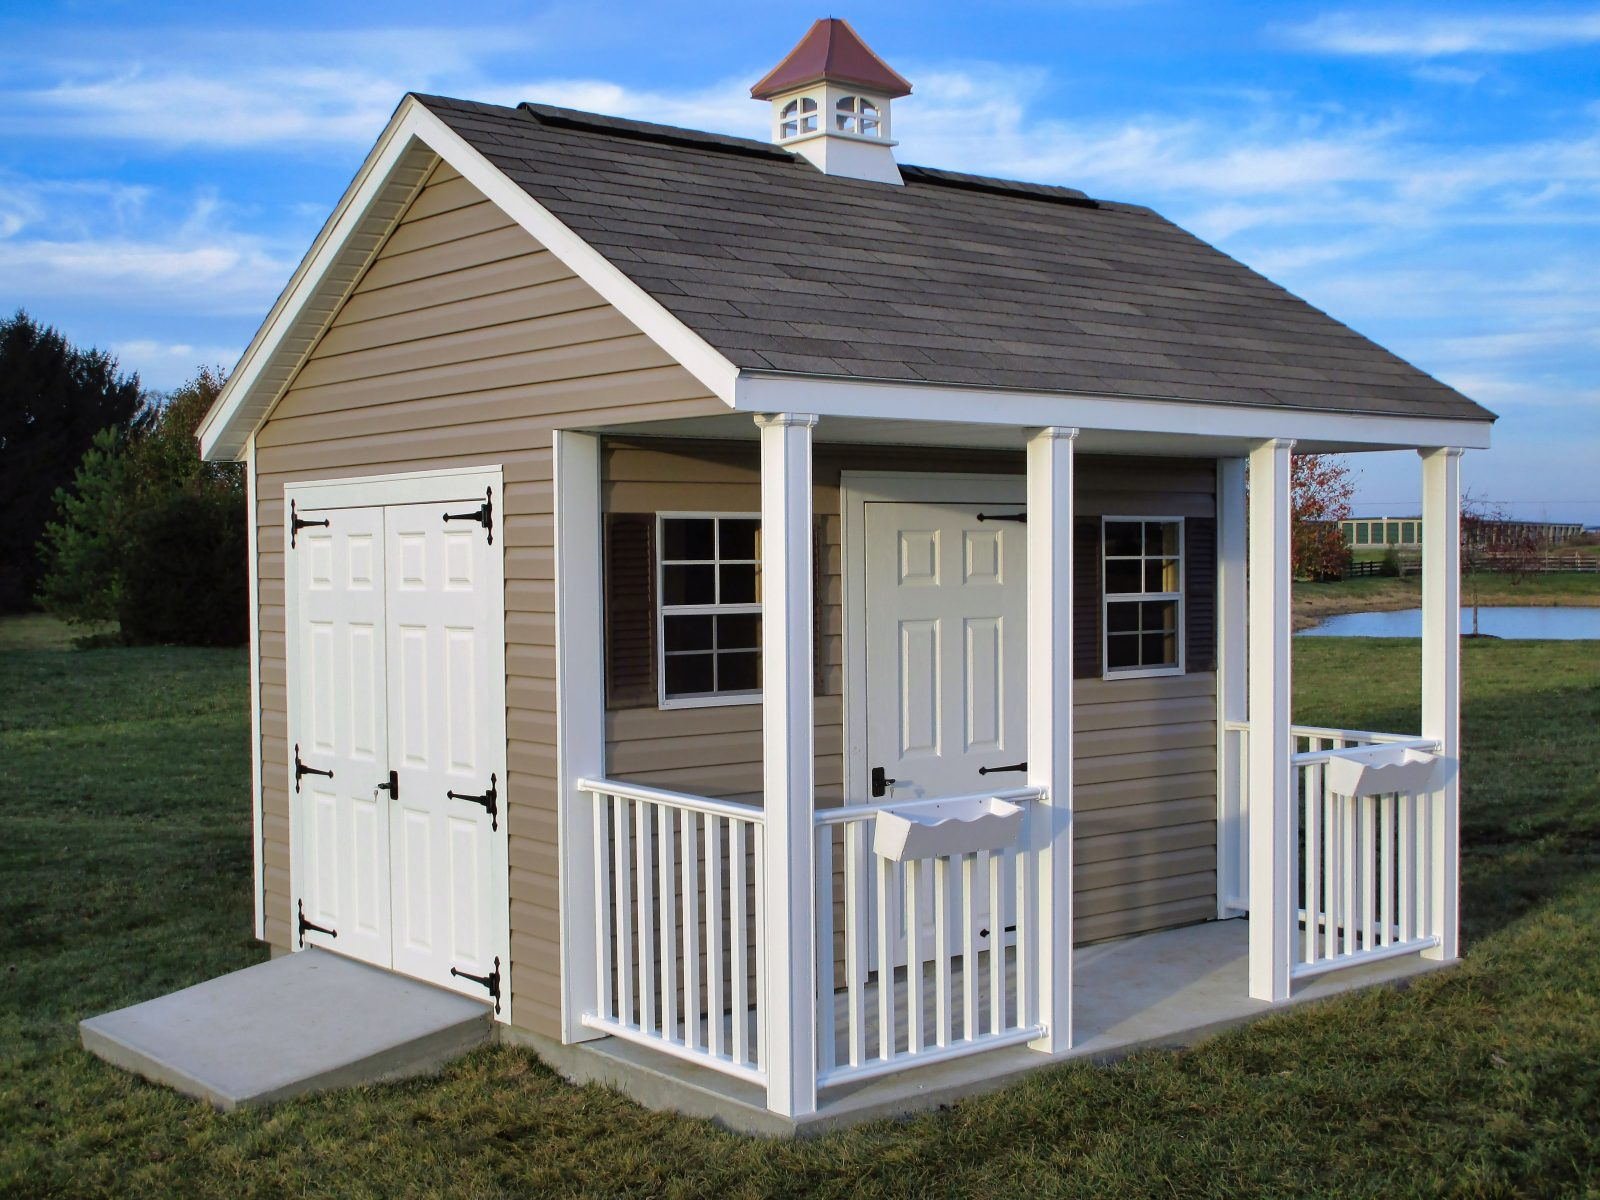 Quality Cabin Sheds 2020 Model  Beachy Barns  Since 1982